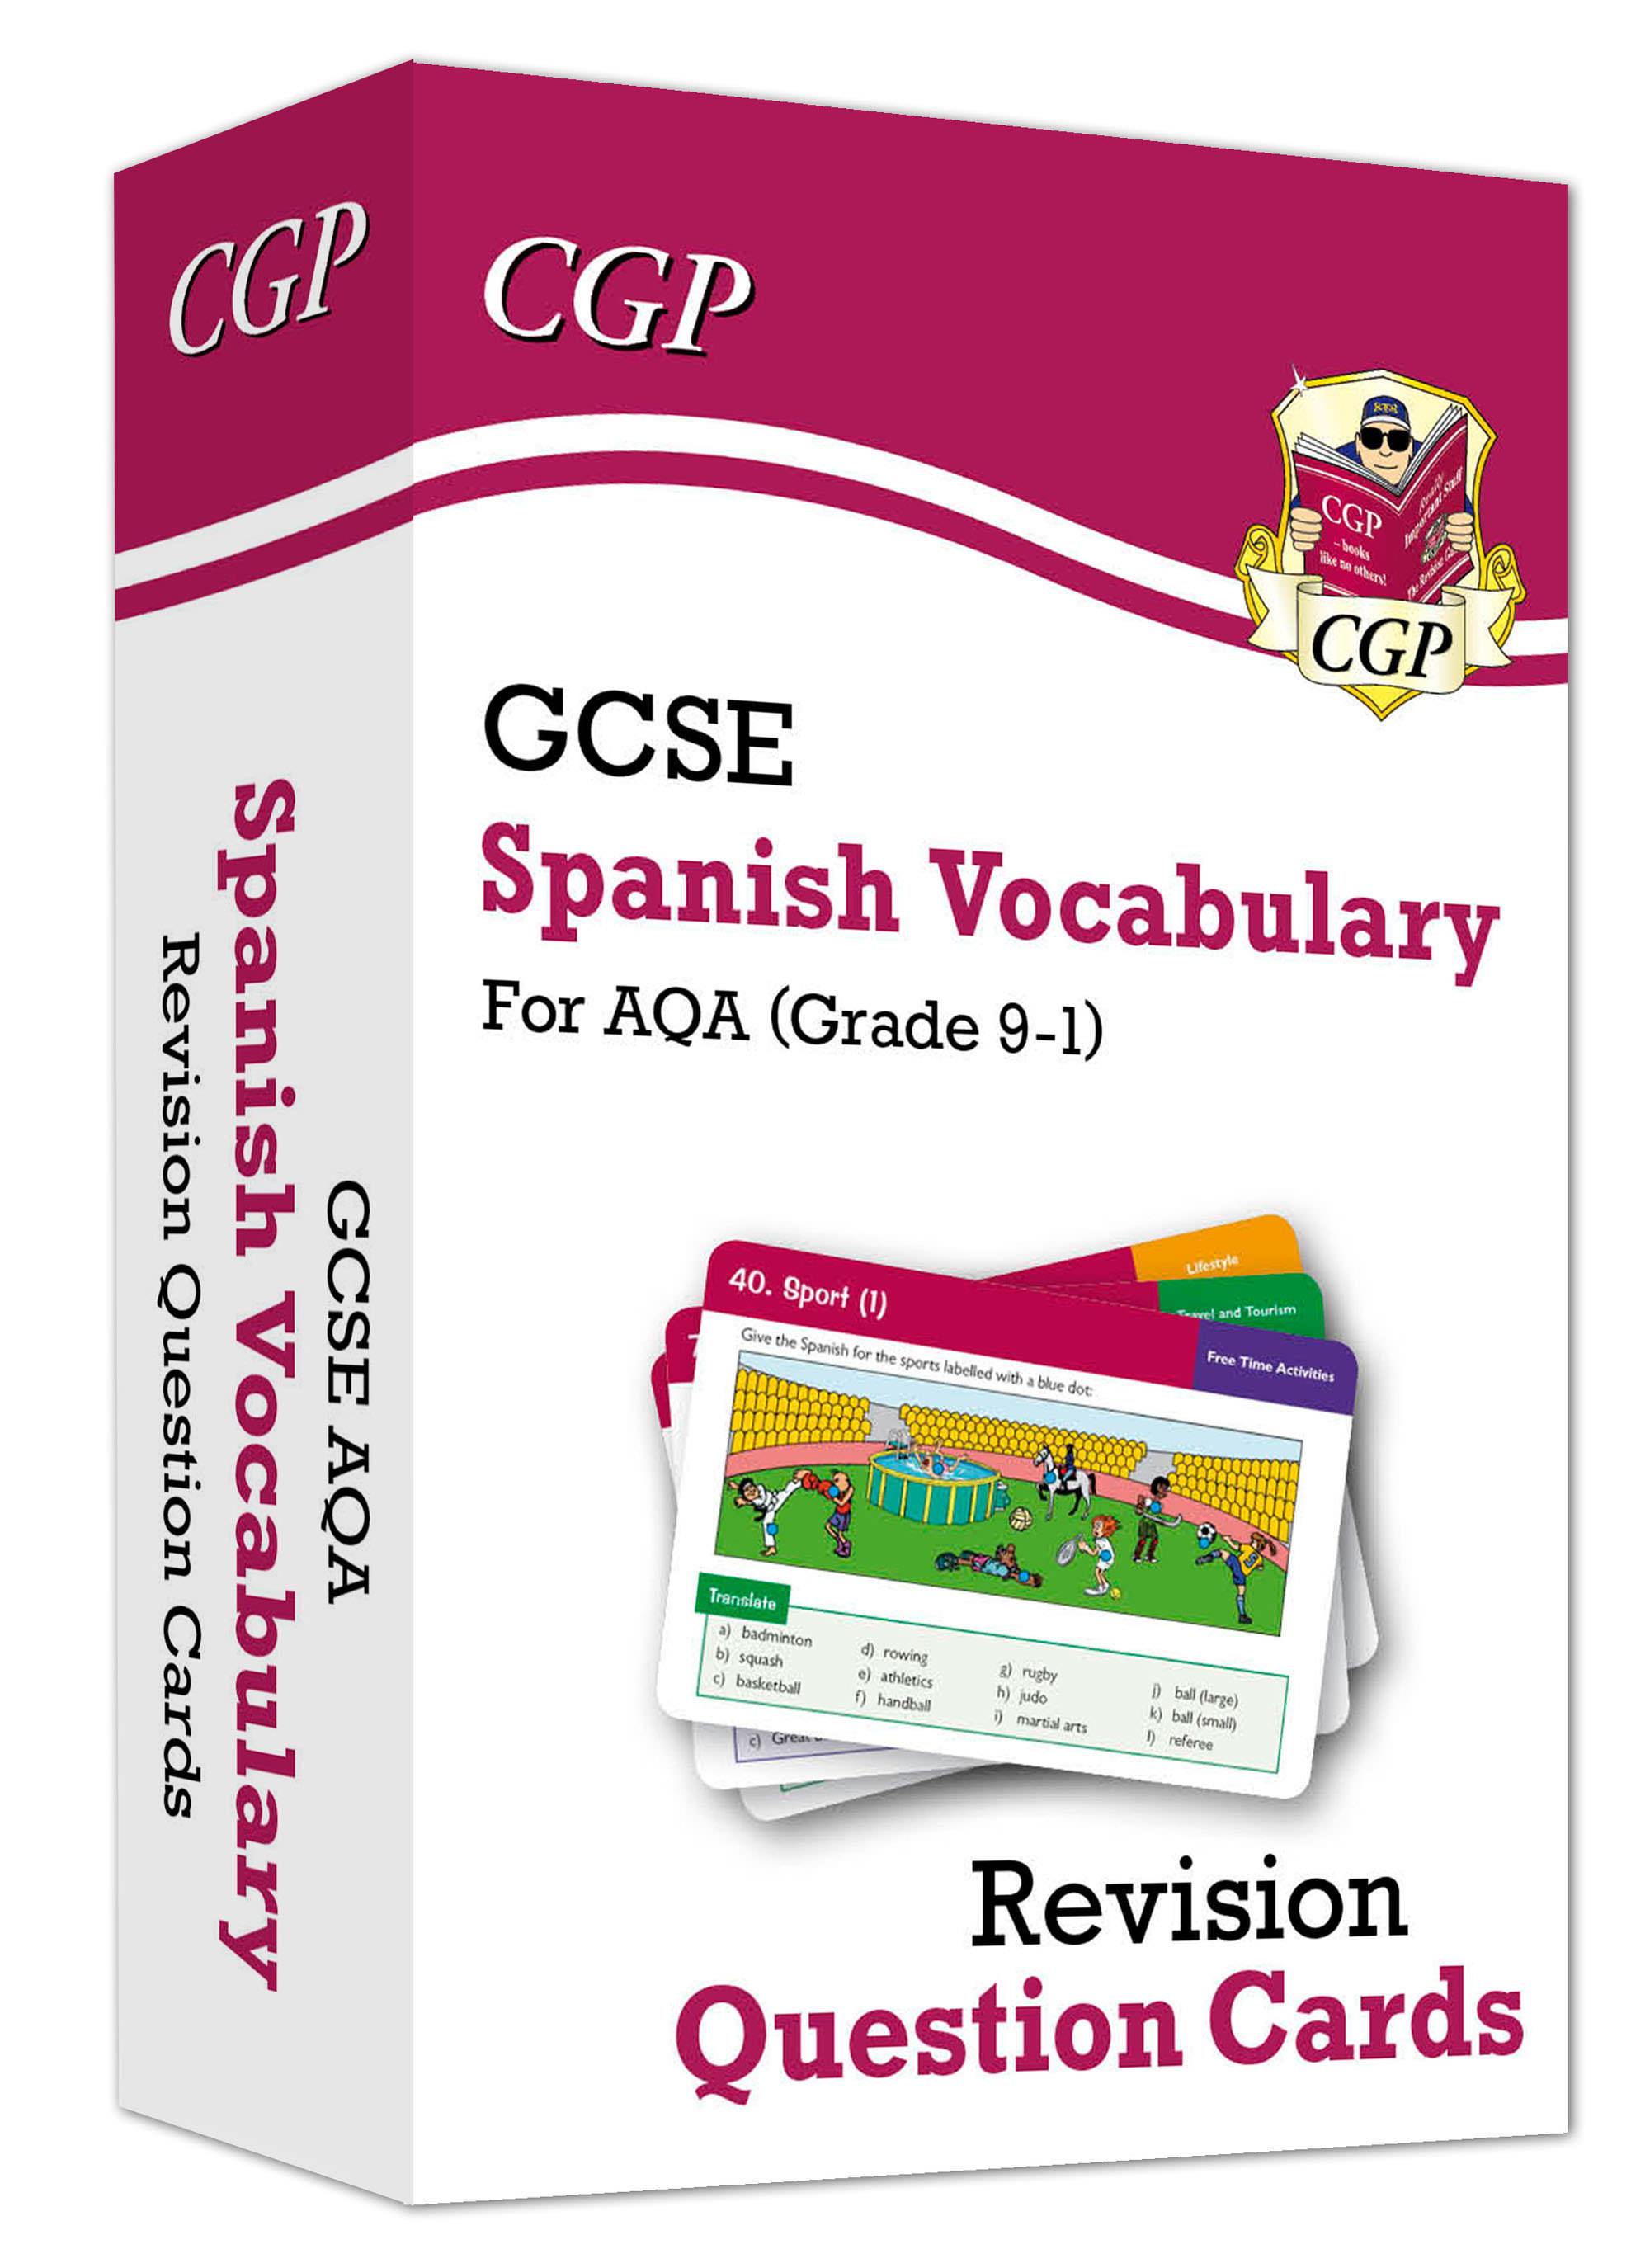 SPAVF41DK - New Grade 9-1 GCSE AQA Spanish: Vocabulary Revision Question Cards